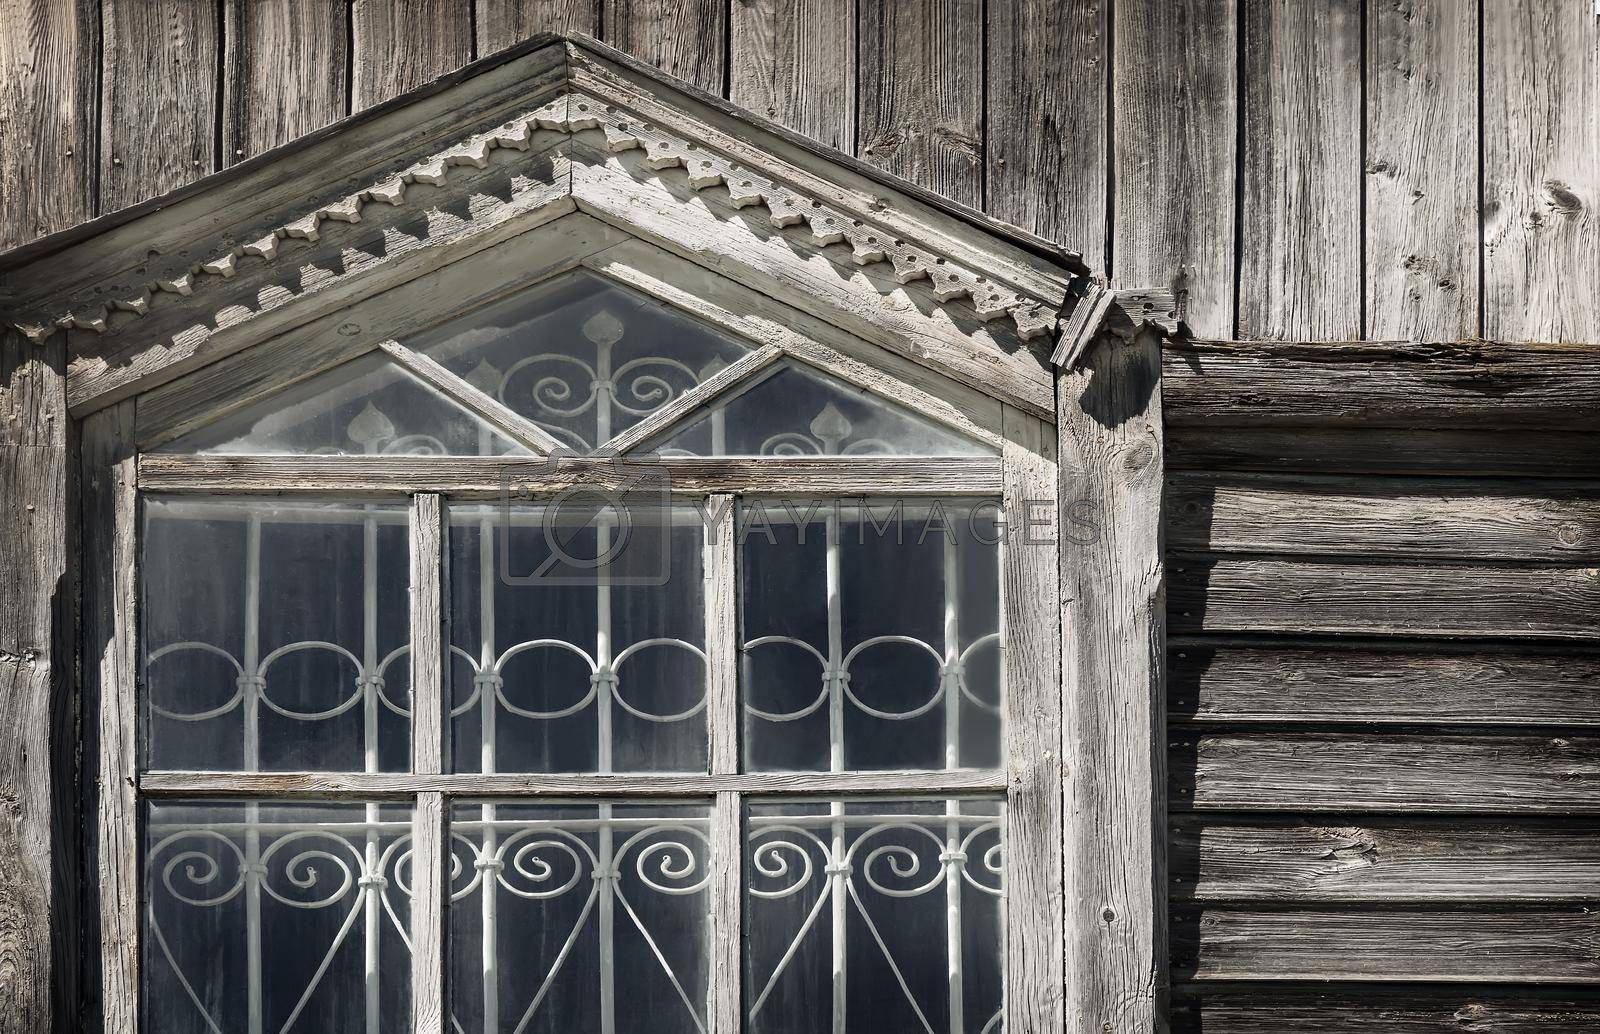 A fragment of the window of the ancient Orthodox wooden Church with wrought iron bars and carved wooden platbands